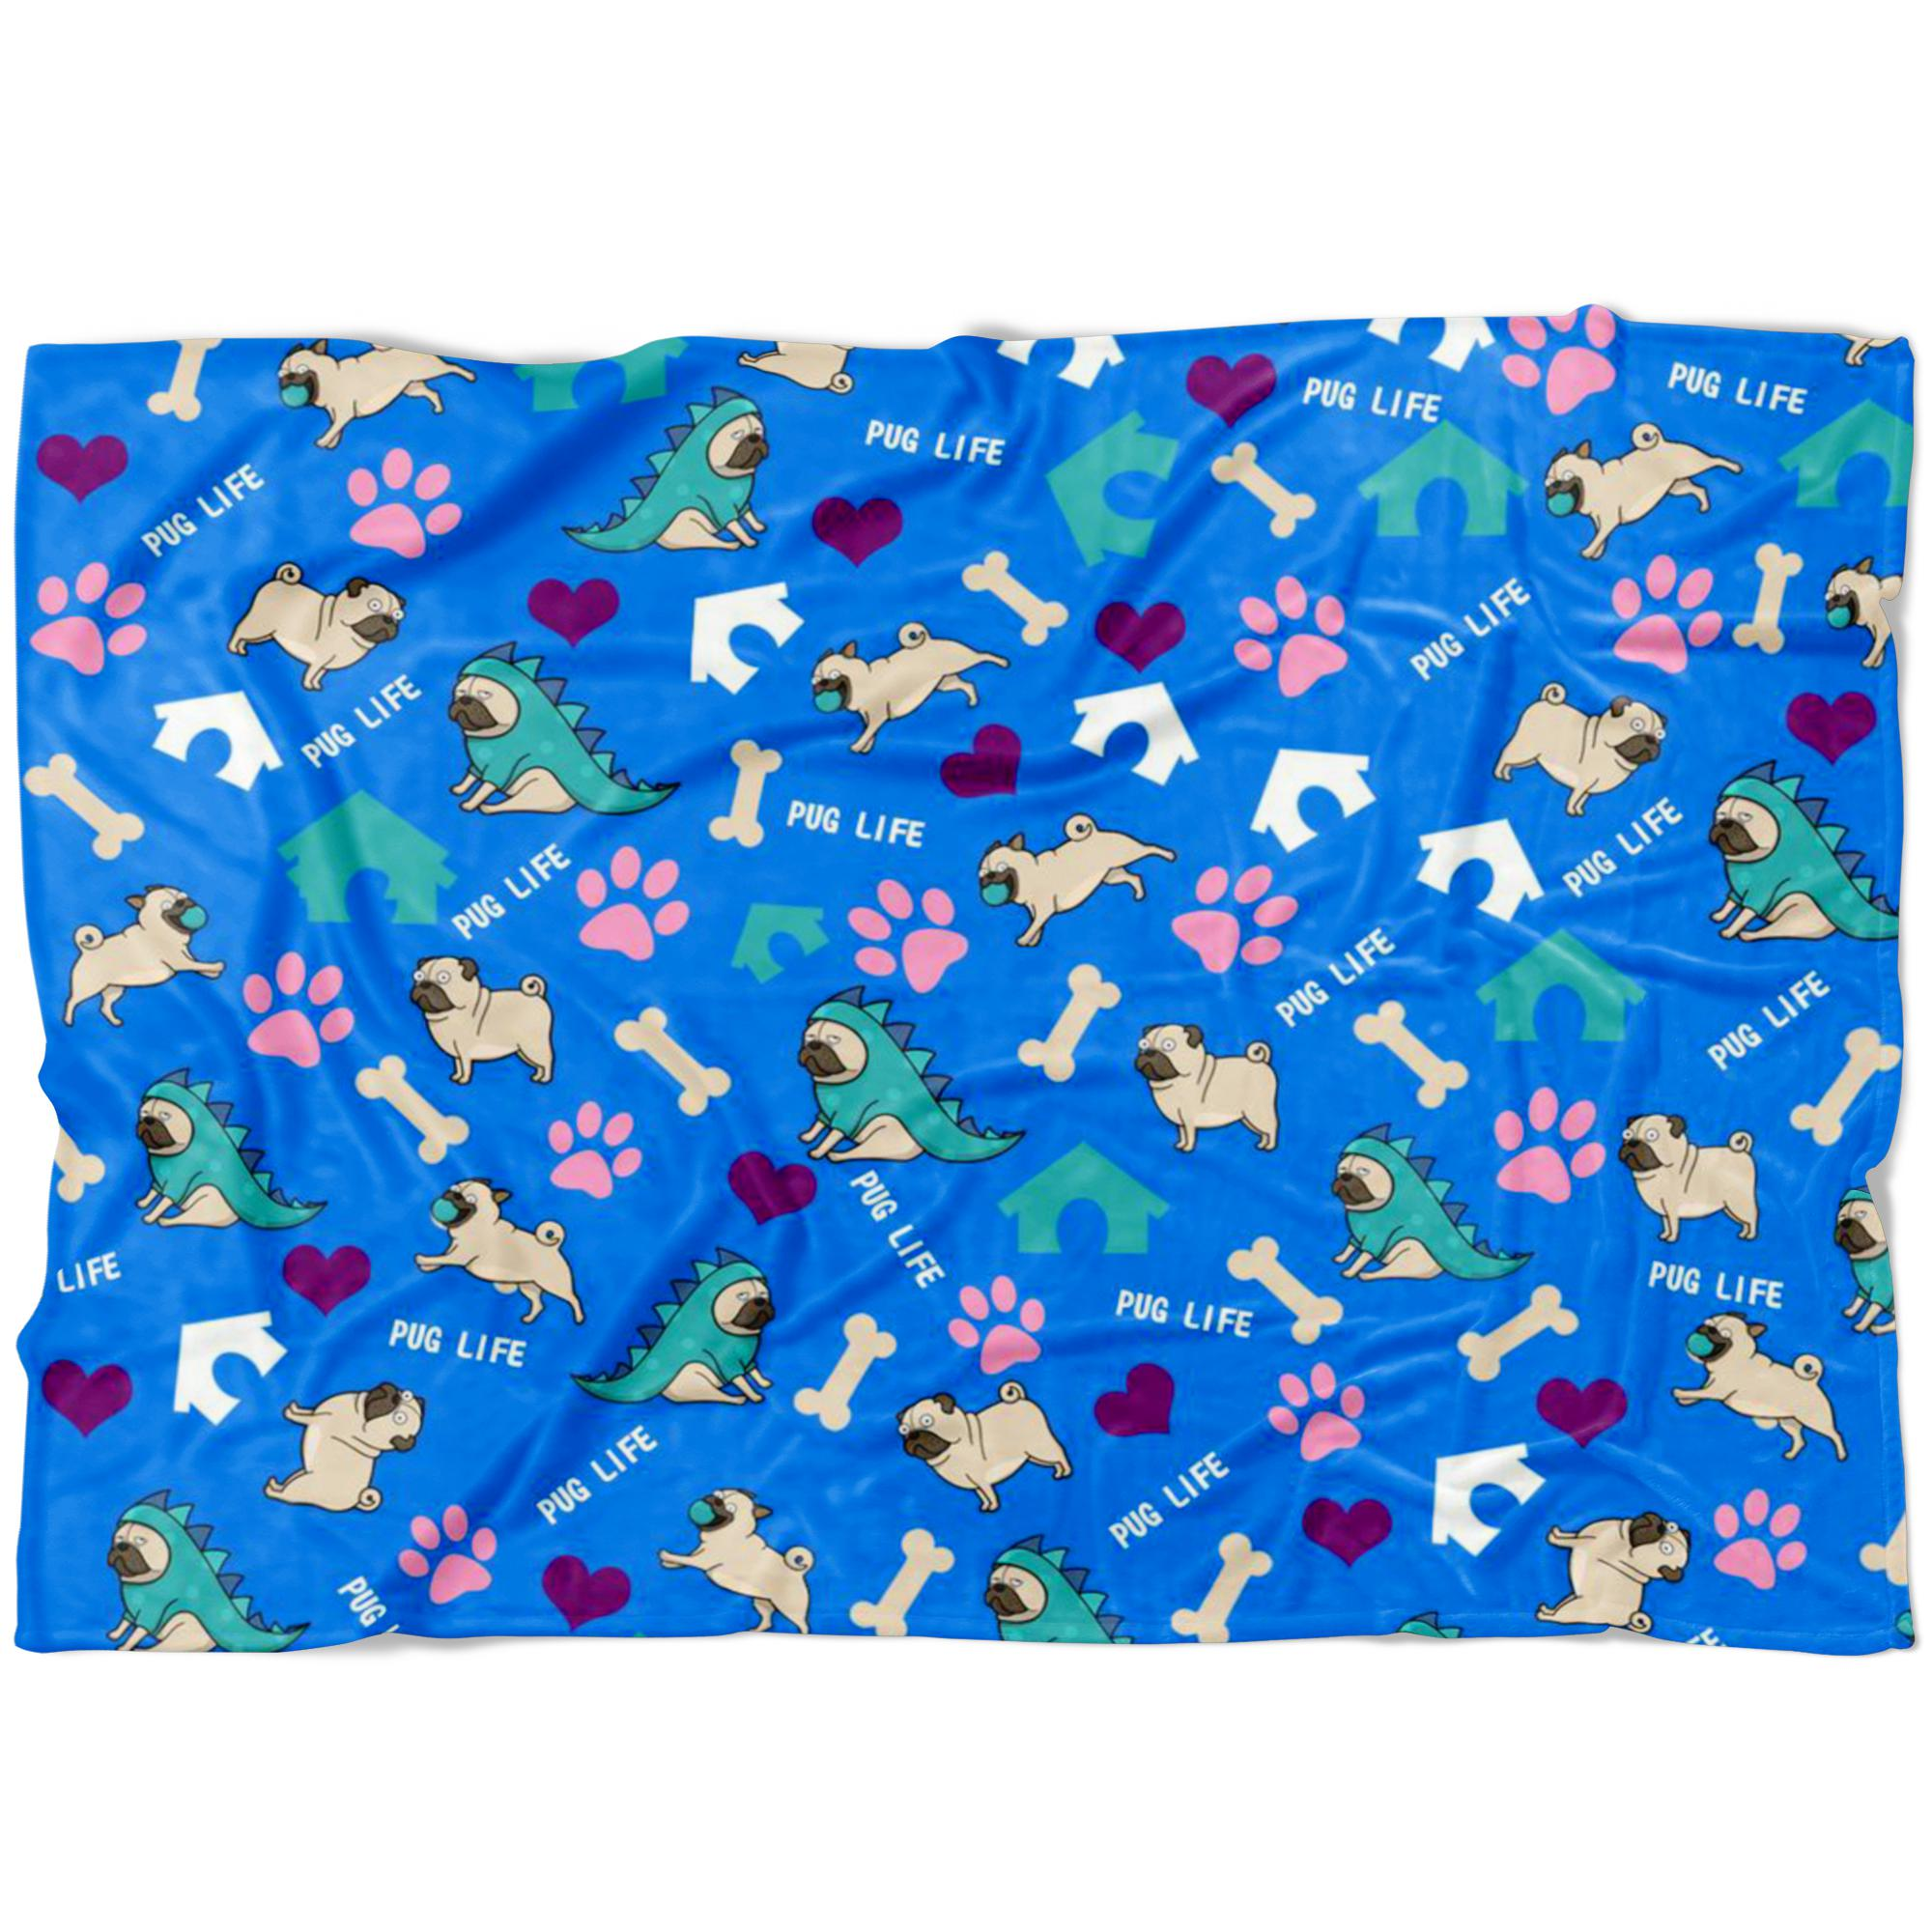 Pug Life Fleece Blanket-Blankets-I love Veterinary